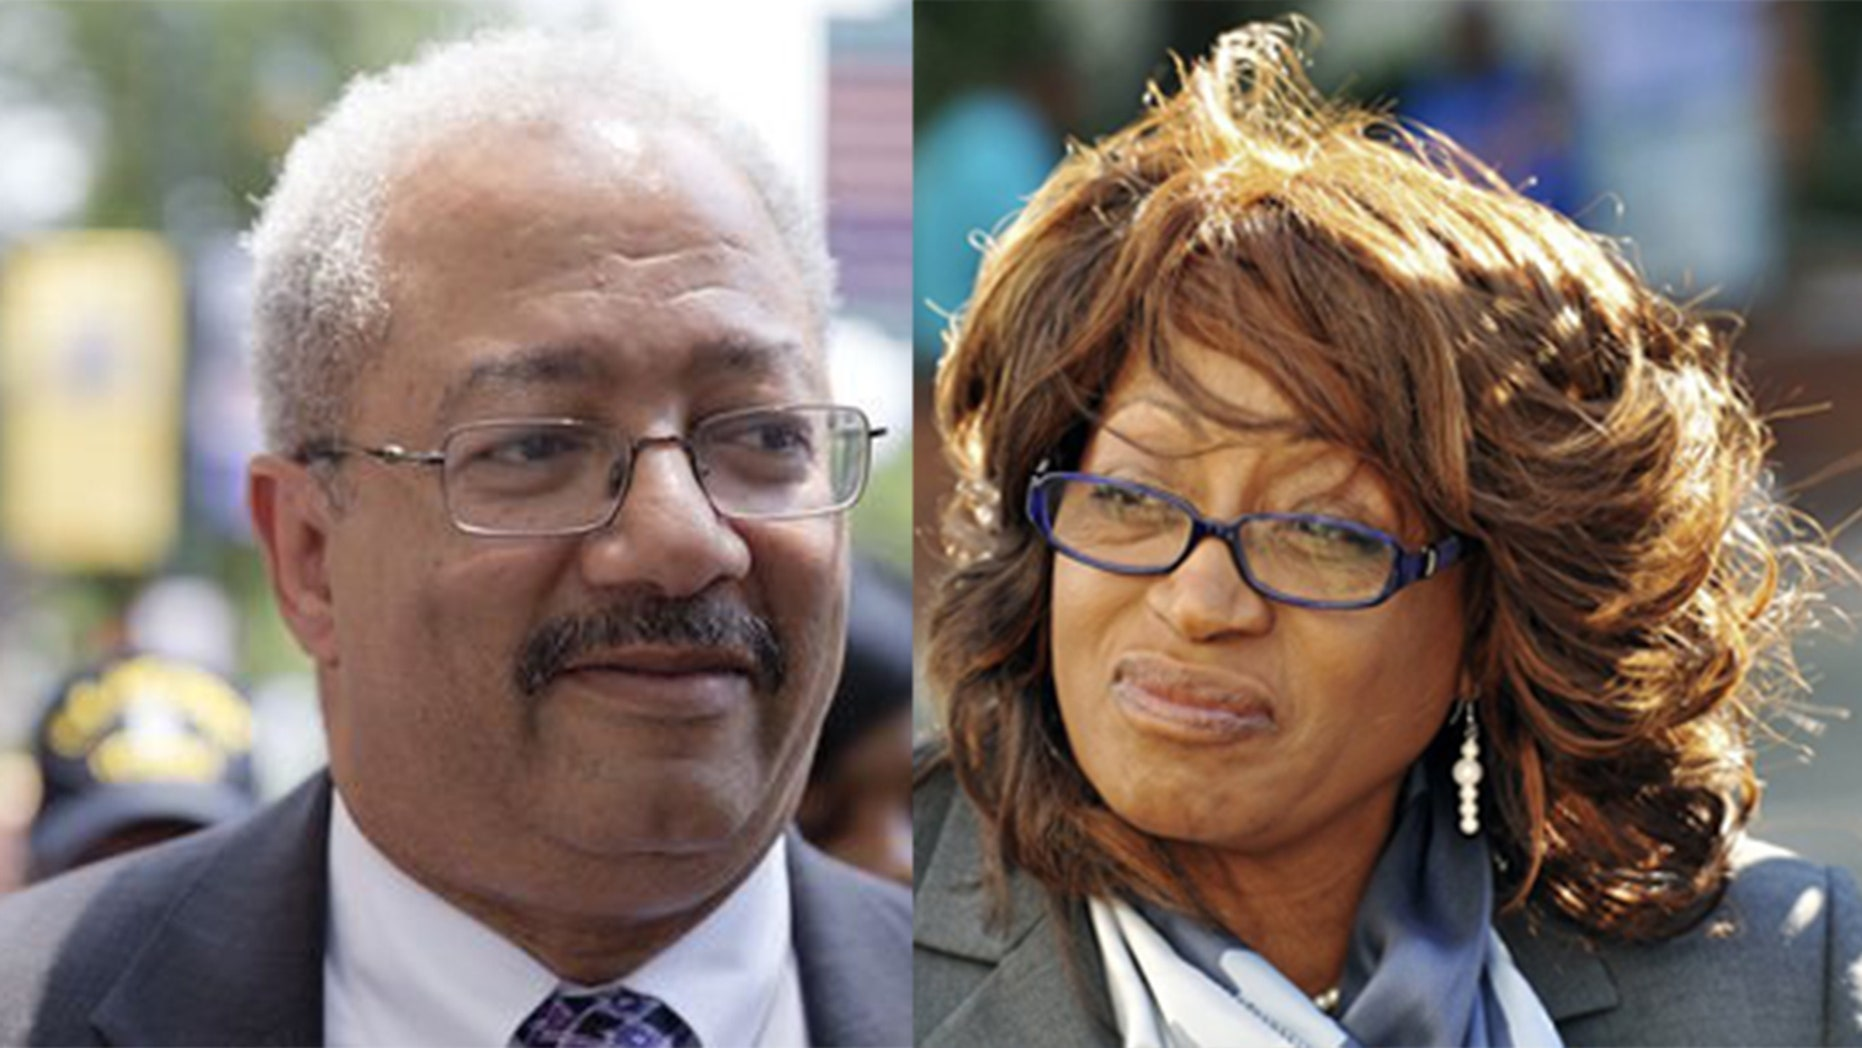 Former Reps. Chaka Fattah, D-Penn., and Corrine Brown, D-Fla., are still receiving taxpayer-funded pensions.